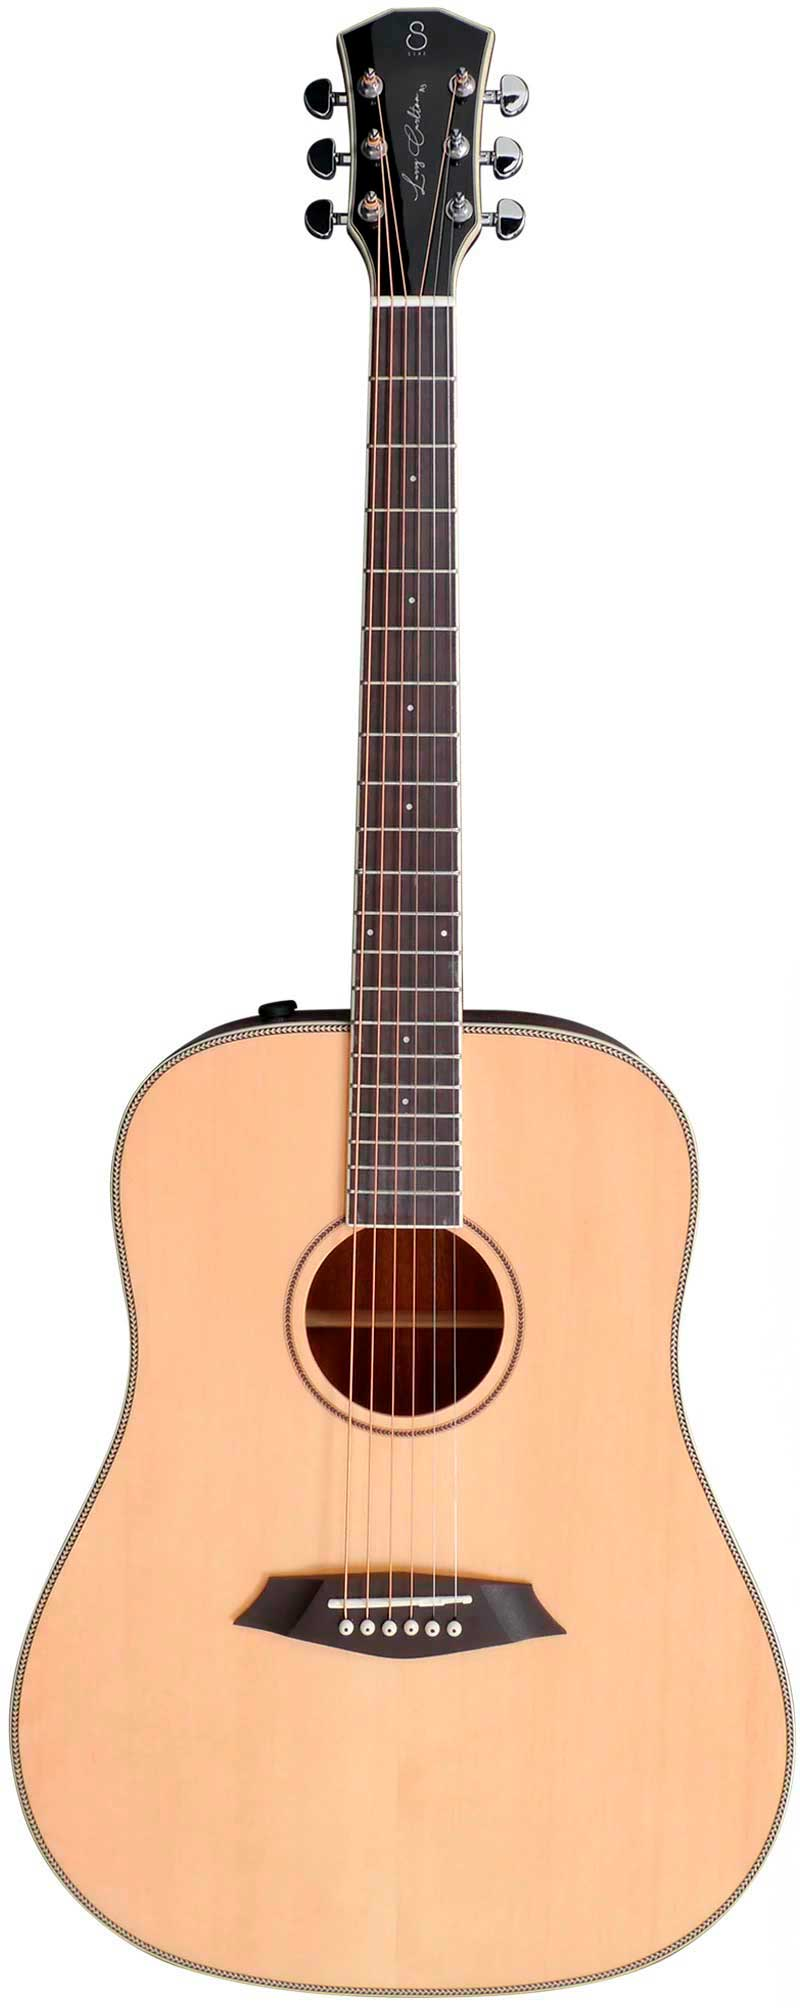 SIRE BY MARCUS MILLER A3-D DREADNOUGHT NATURAL